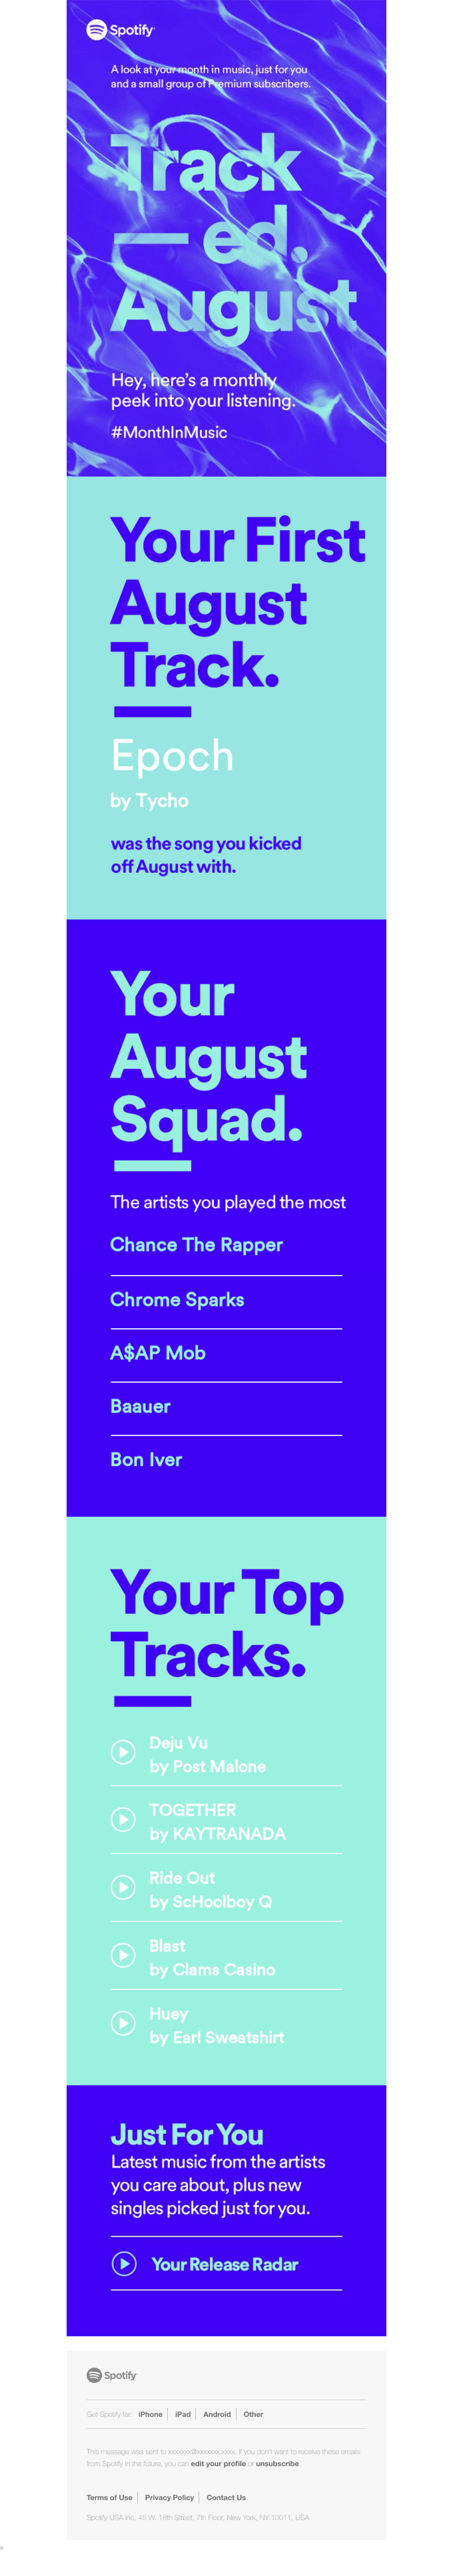 Spotify email design example